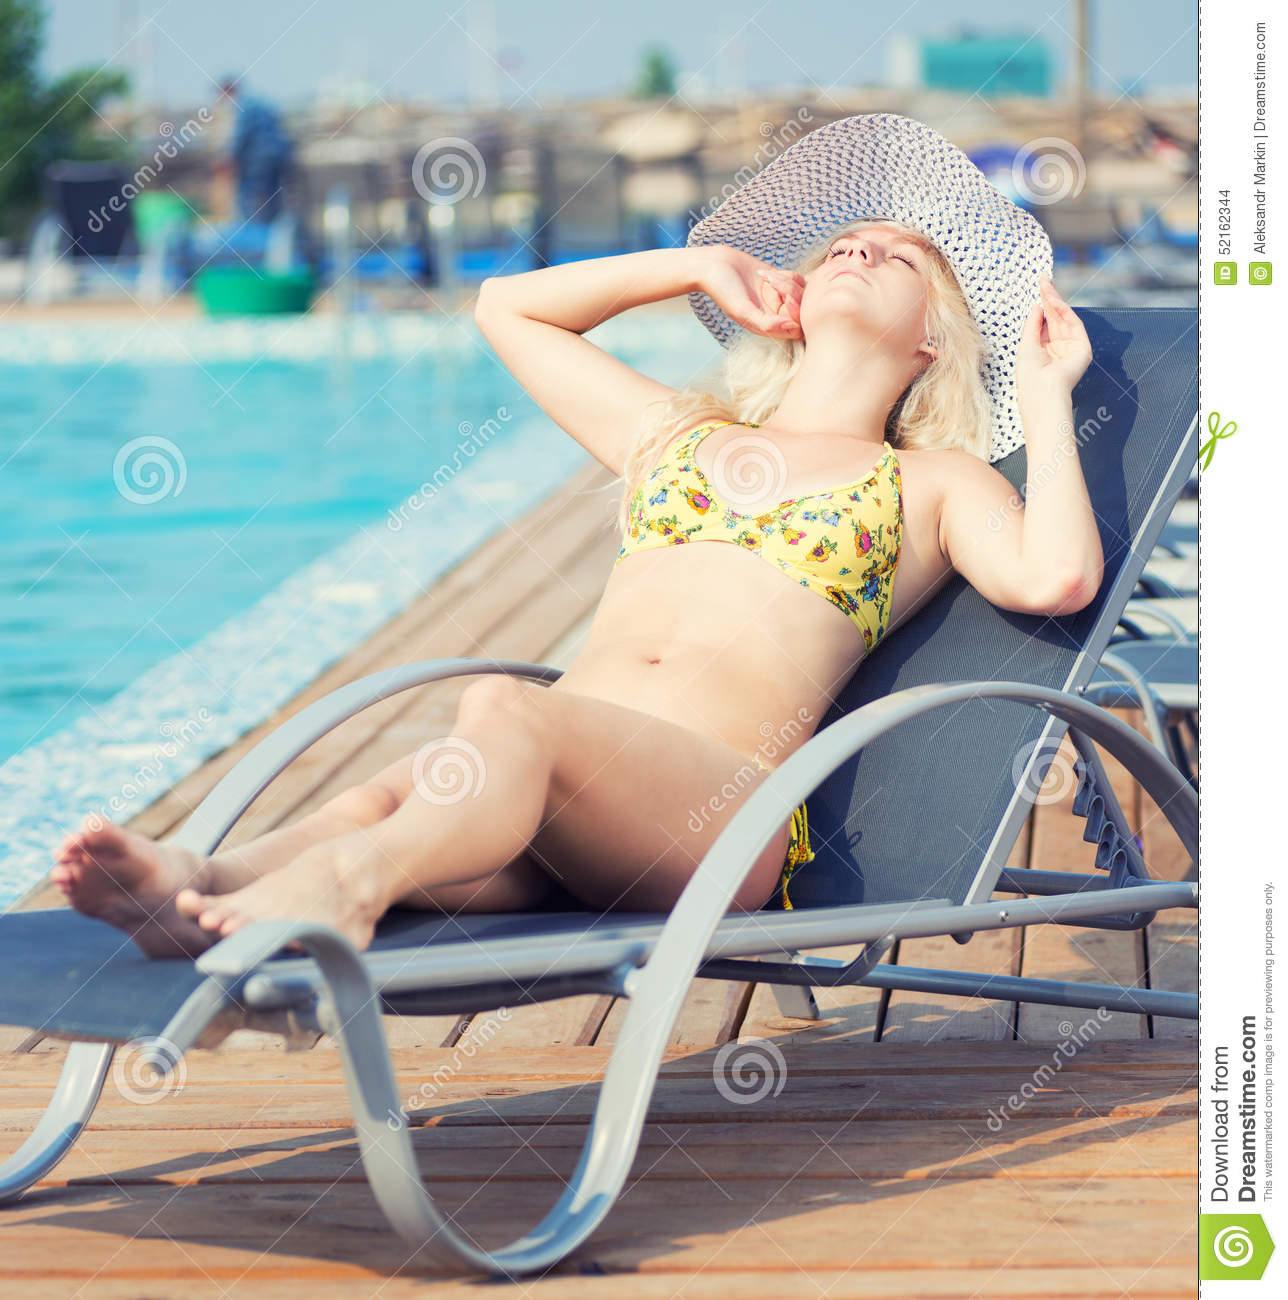 Young woman in swimsuit laying on chaise-longue